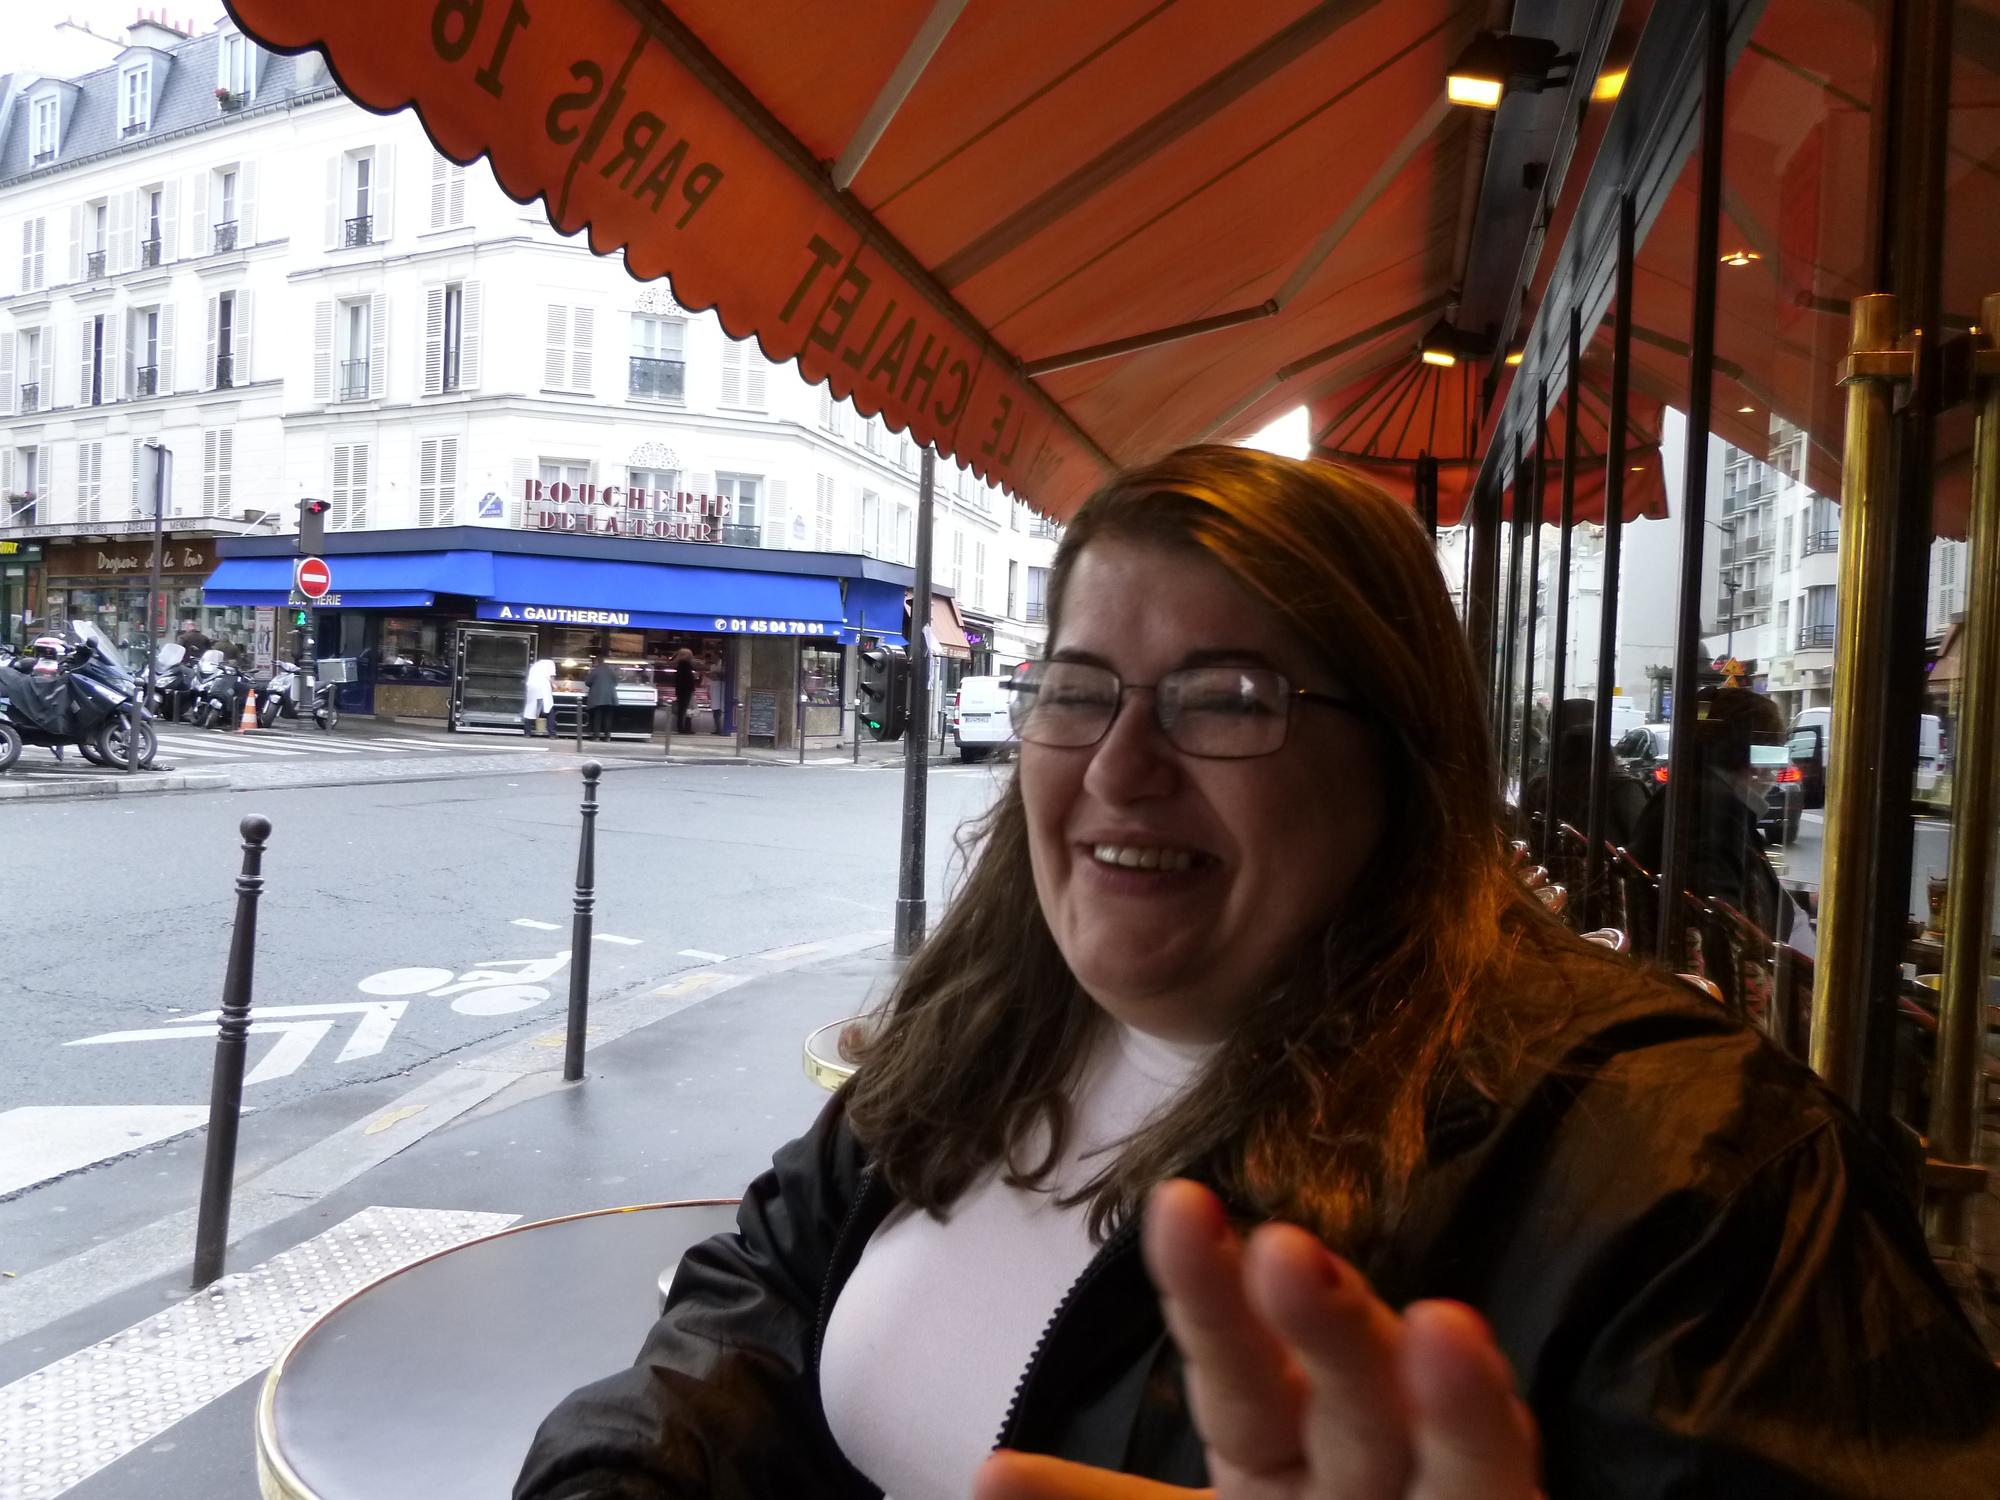 http://ralsina.me/galleries/london-paris-2012/P1000191.JPG